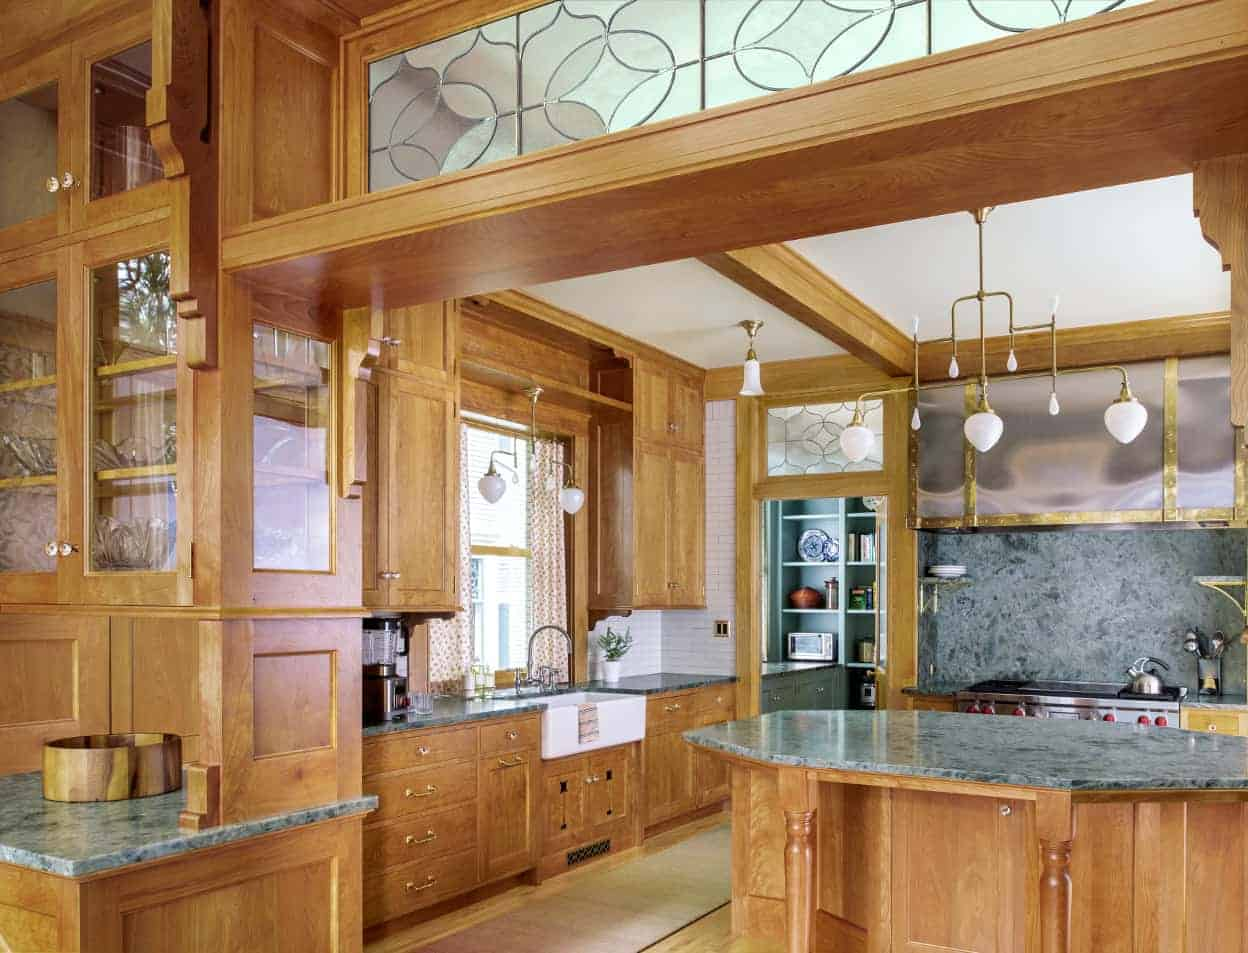 Brushed brass tubular chandeliers with white teardrop shades hang over the island and farmhouse sink, supplementing the large window over the sink. There's also a glimpse of the blue-green pantry, which harmonizes beautifully with the counters.